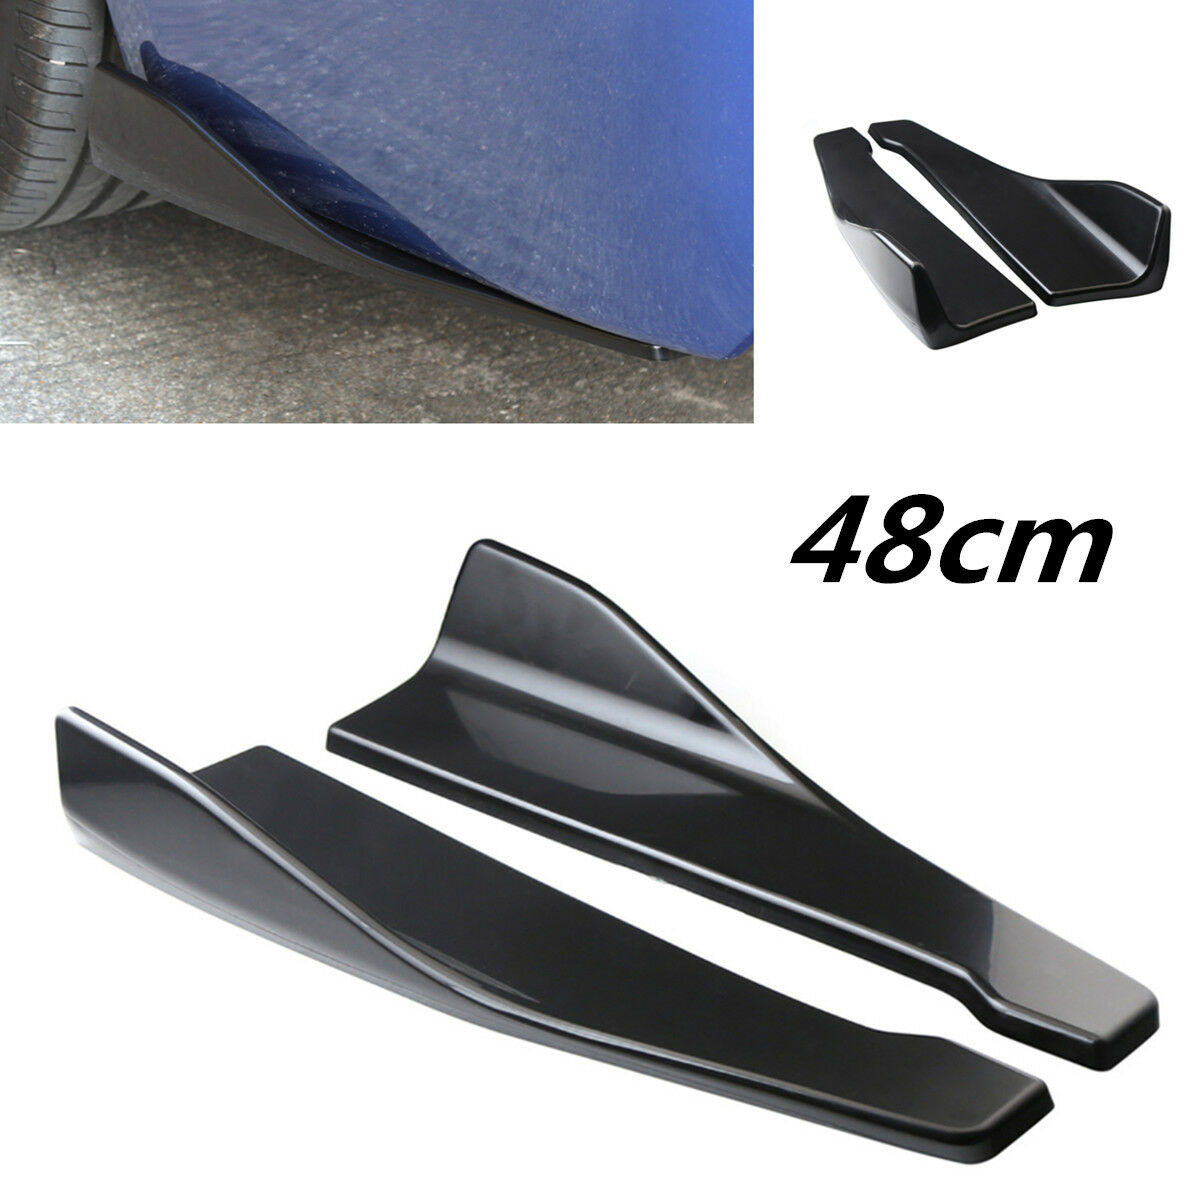 Car Parts - 2Pcs Car Accessories Bumper Spoiler Rear Lip Angle Splitter Diffuser Protector